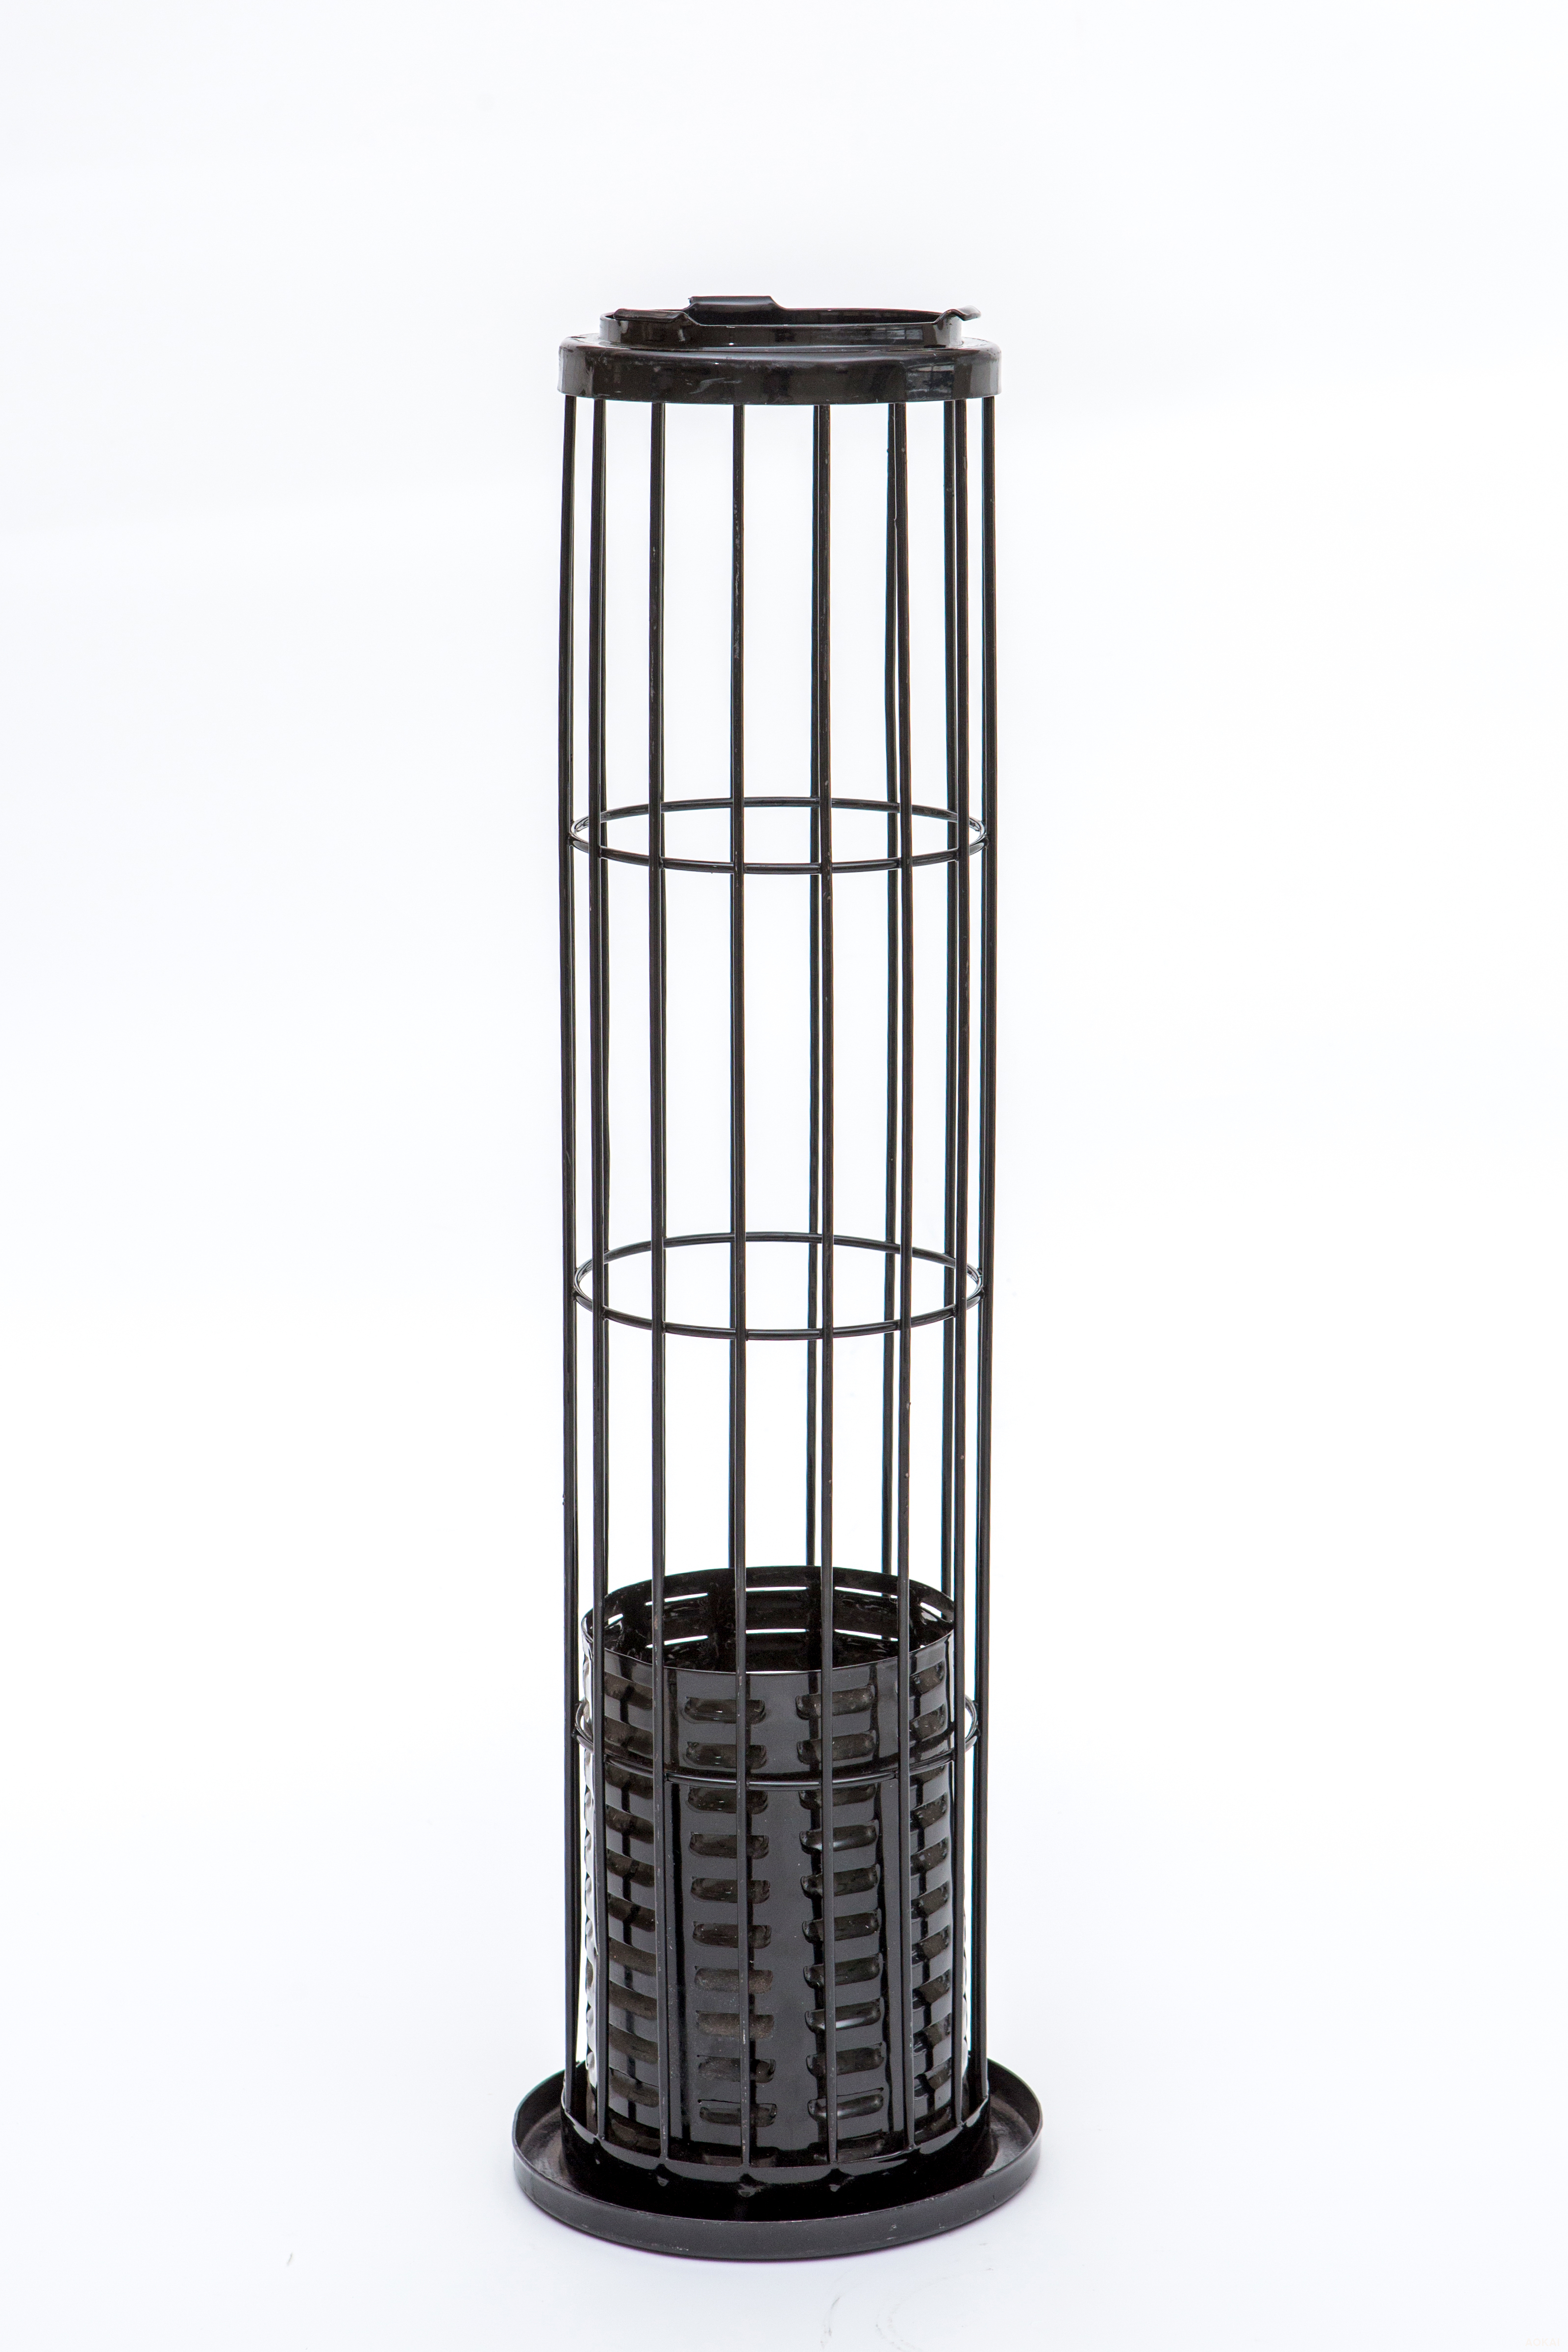 Industrial Dust Filter Flame Filter Bag Cage